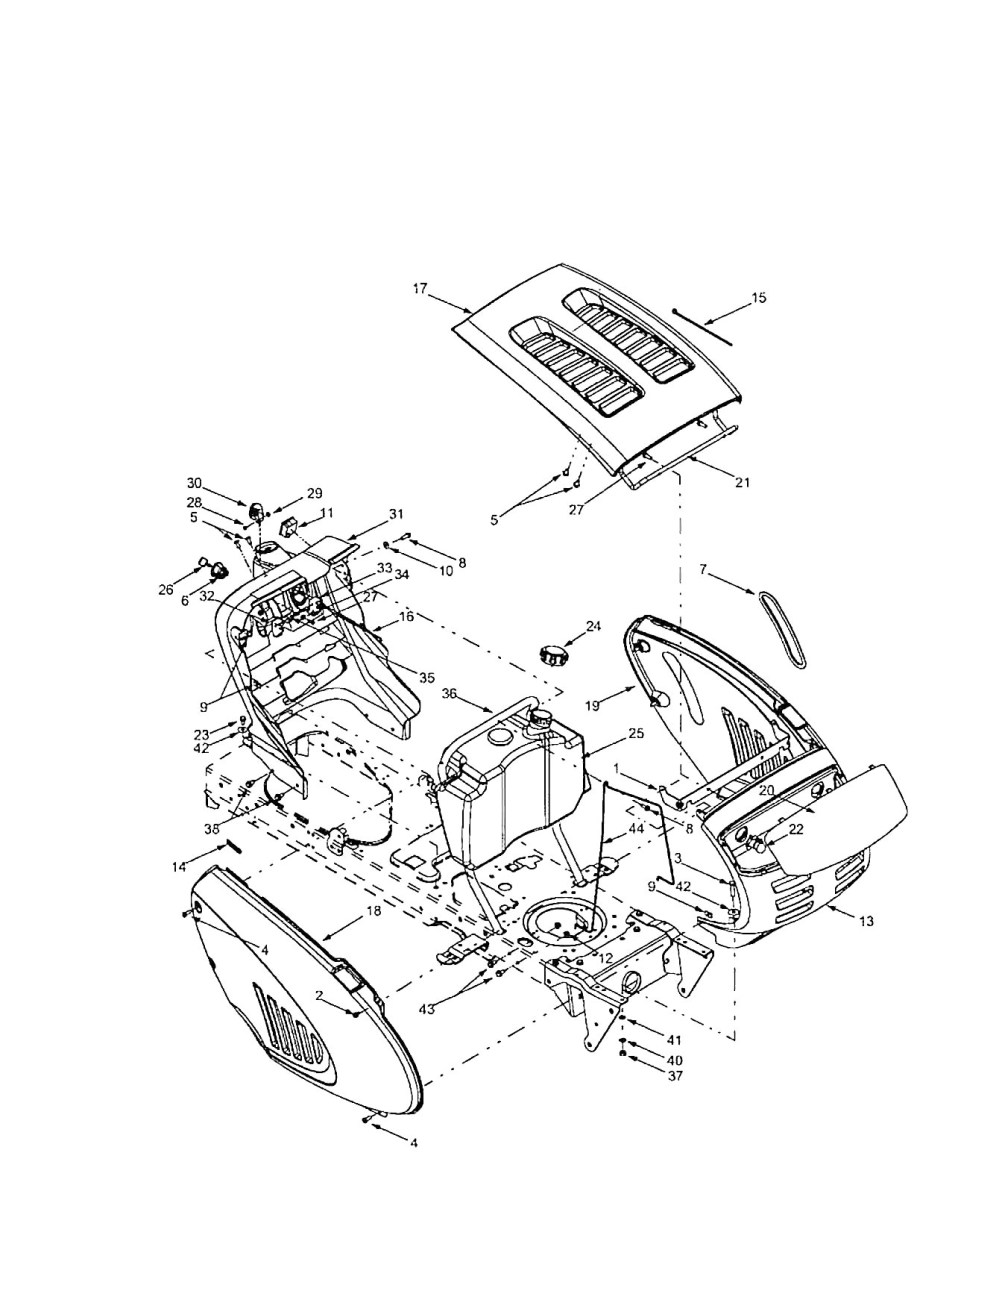 medium resolution of lawn mower paintings search result at paintingvalley com 1340x1738 wiring diagram troy bilt lawn mower lawn